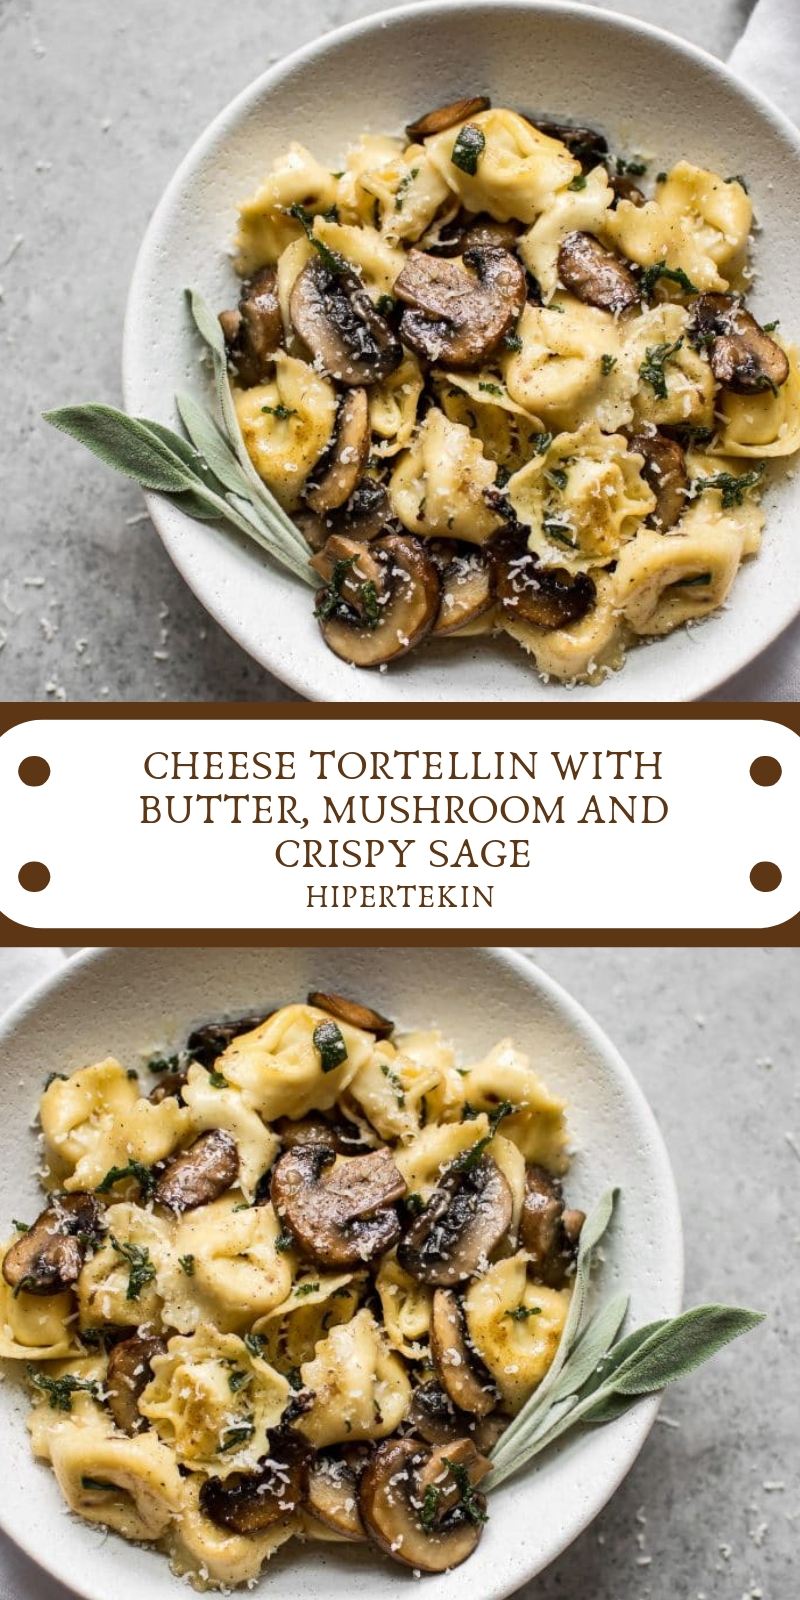 CHEESE TORTELLIN WITH BUTTER, MUSHROOM AND CRISPY SAGE